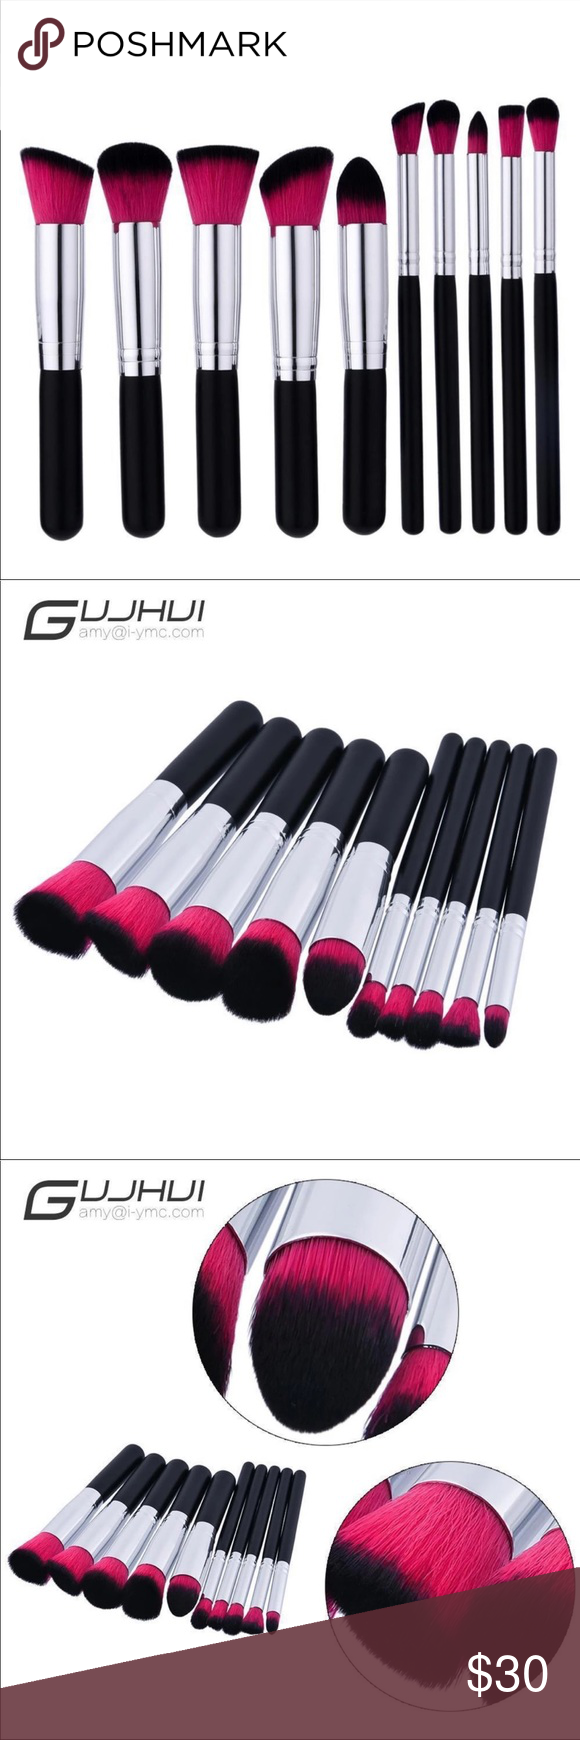 Photo of 10pcs Makeup Brush Set Professional Makeup Brush Set Brush Material …